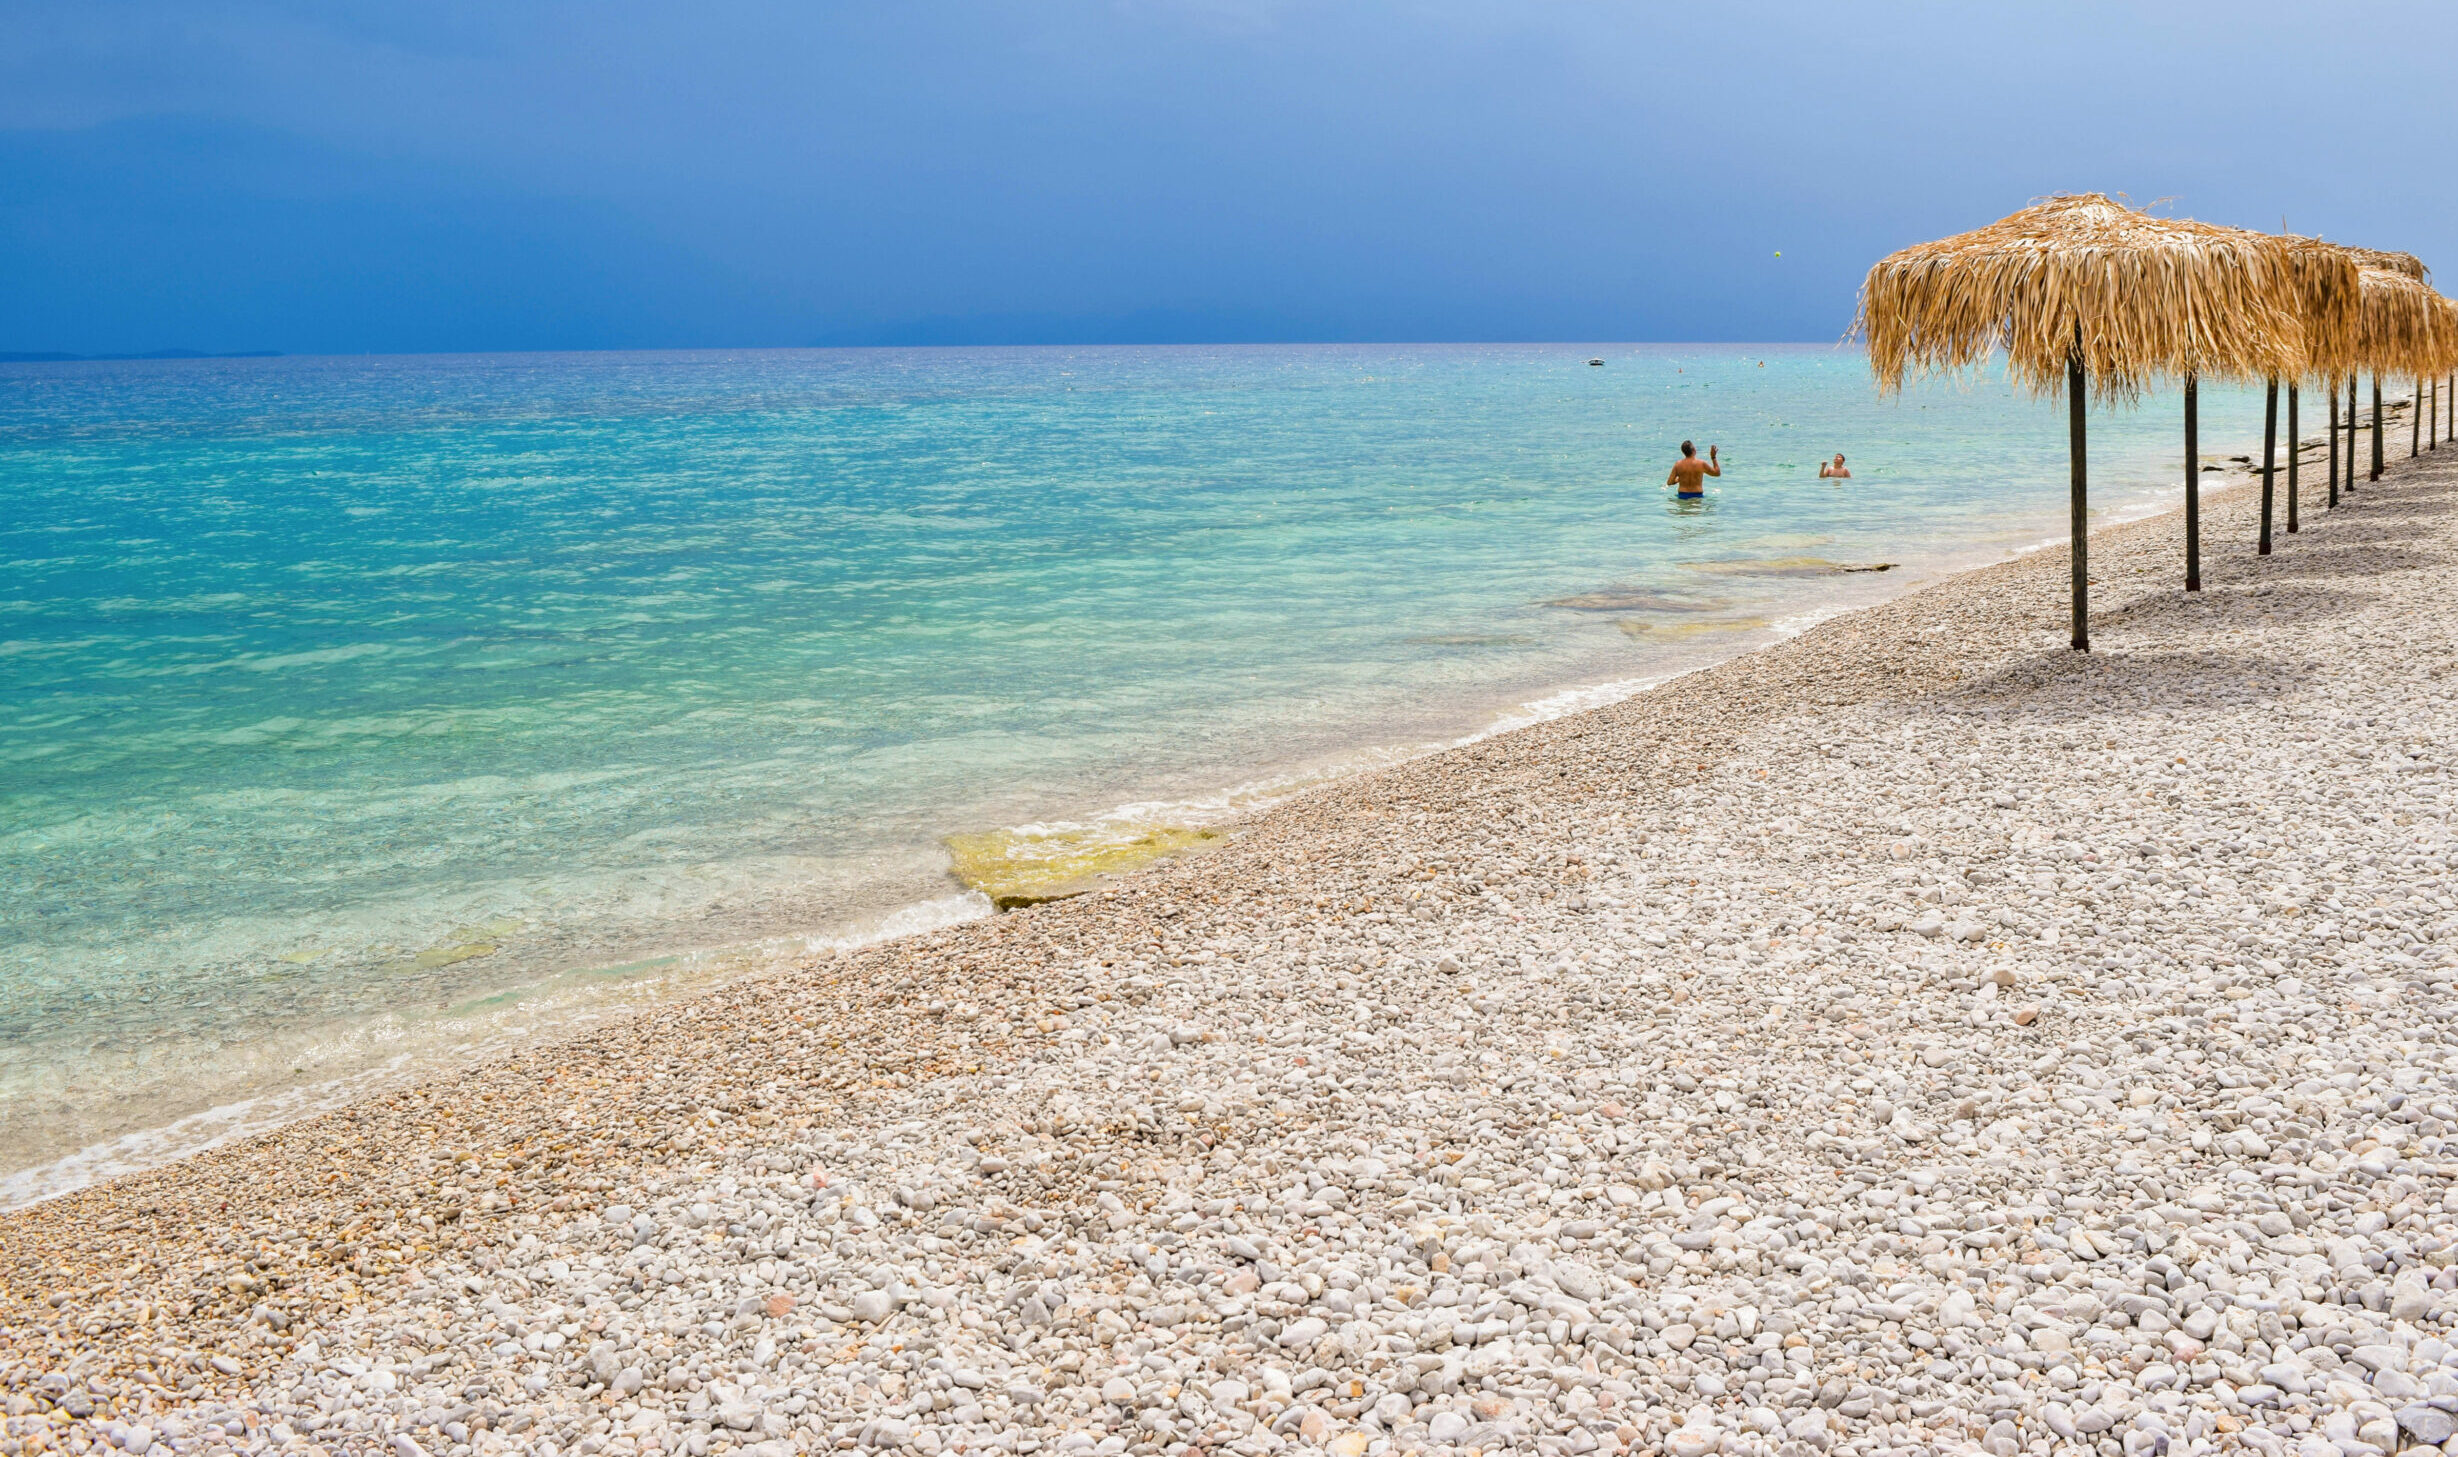 Corinthian Gulf beaches – ideal for day trips from Athens